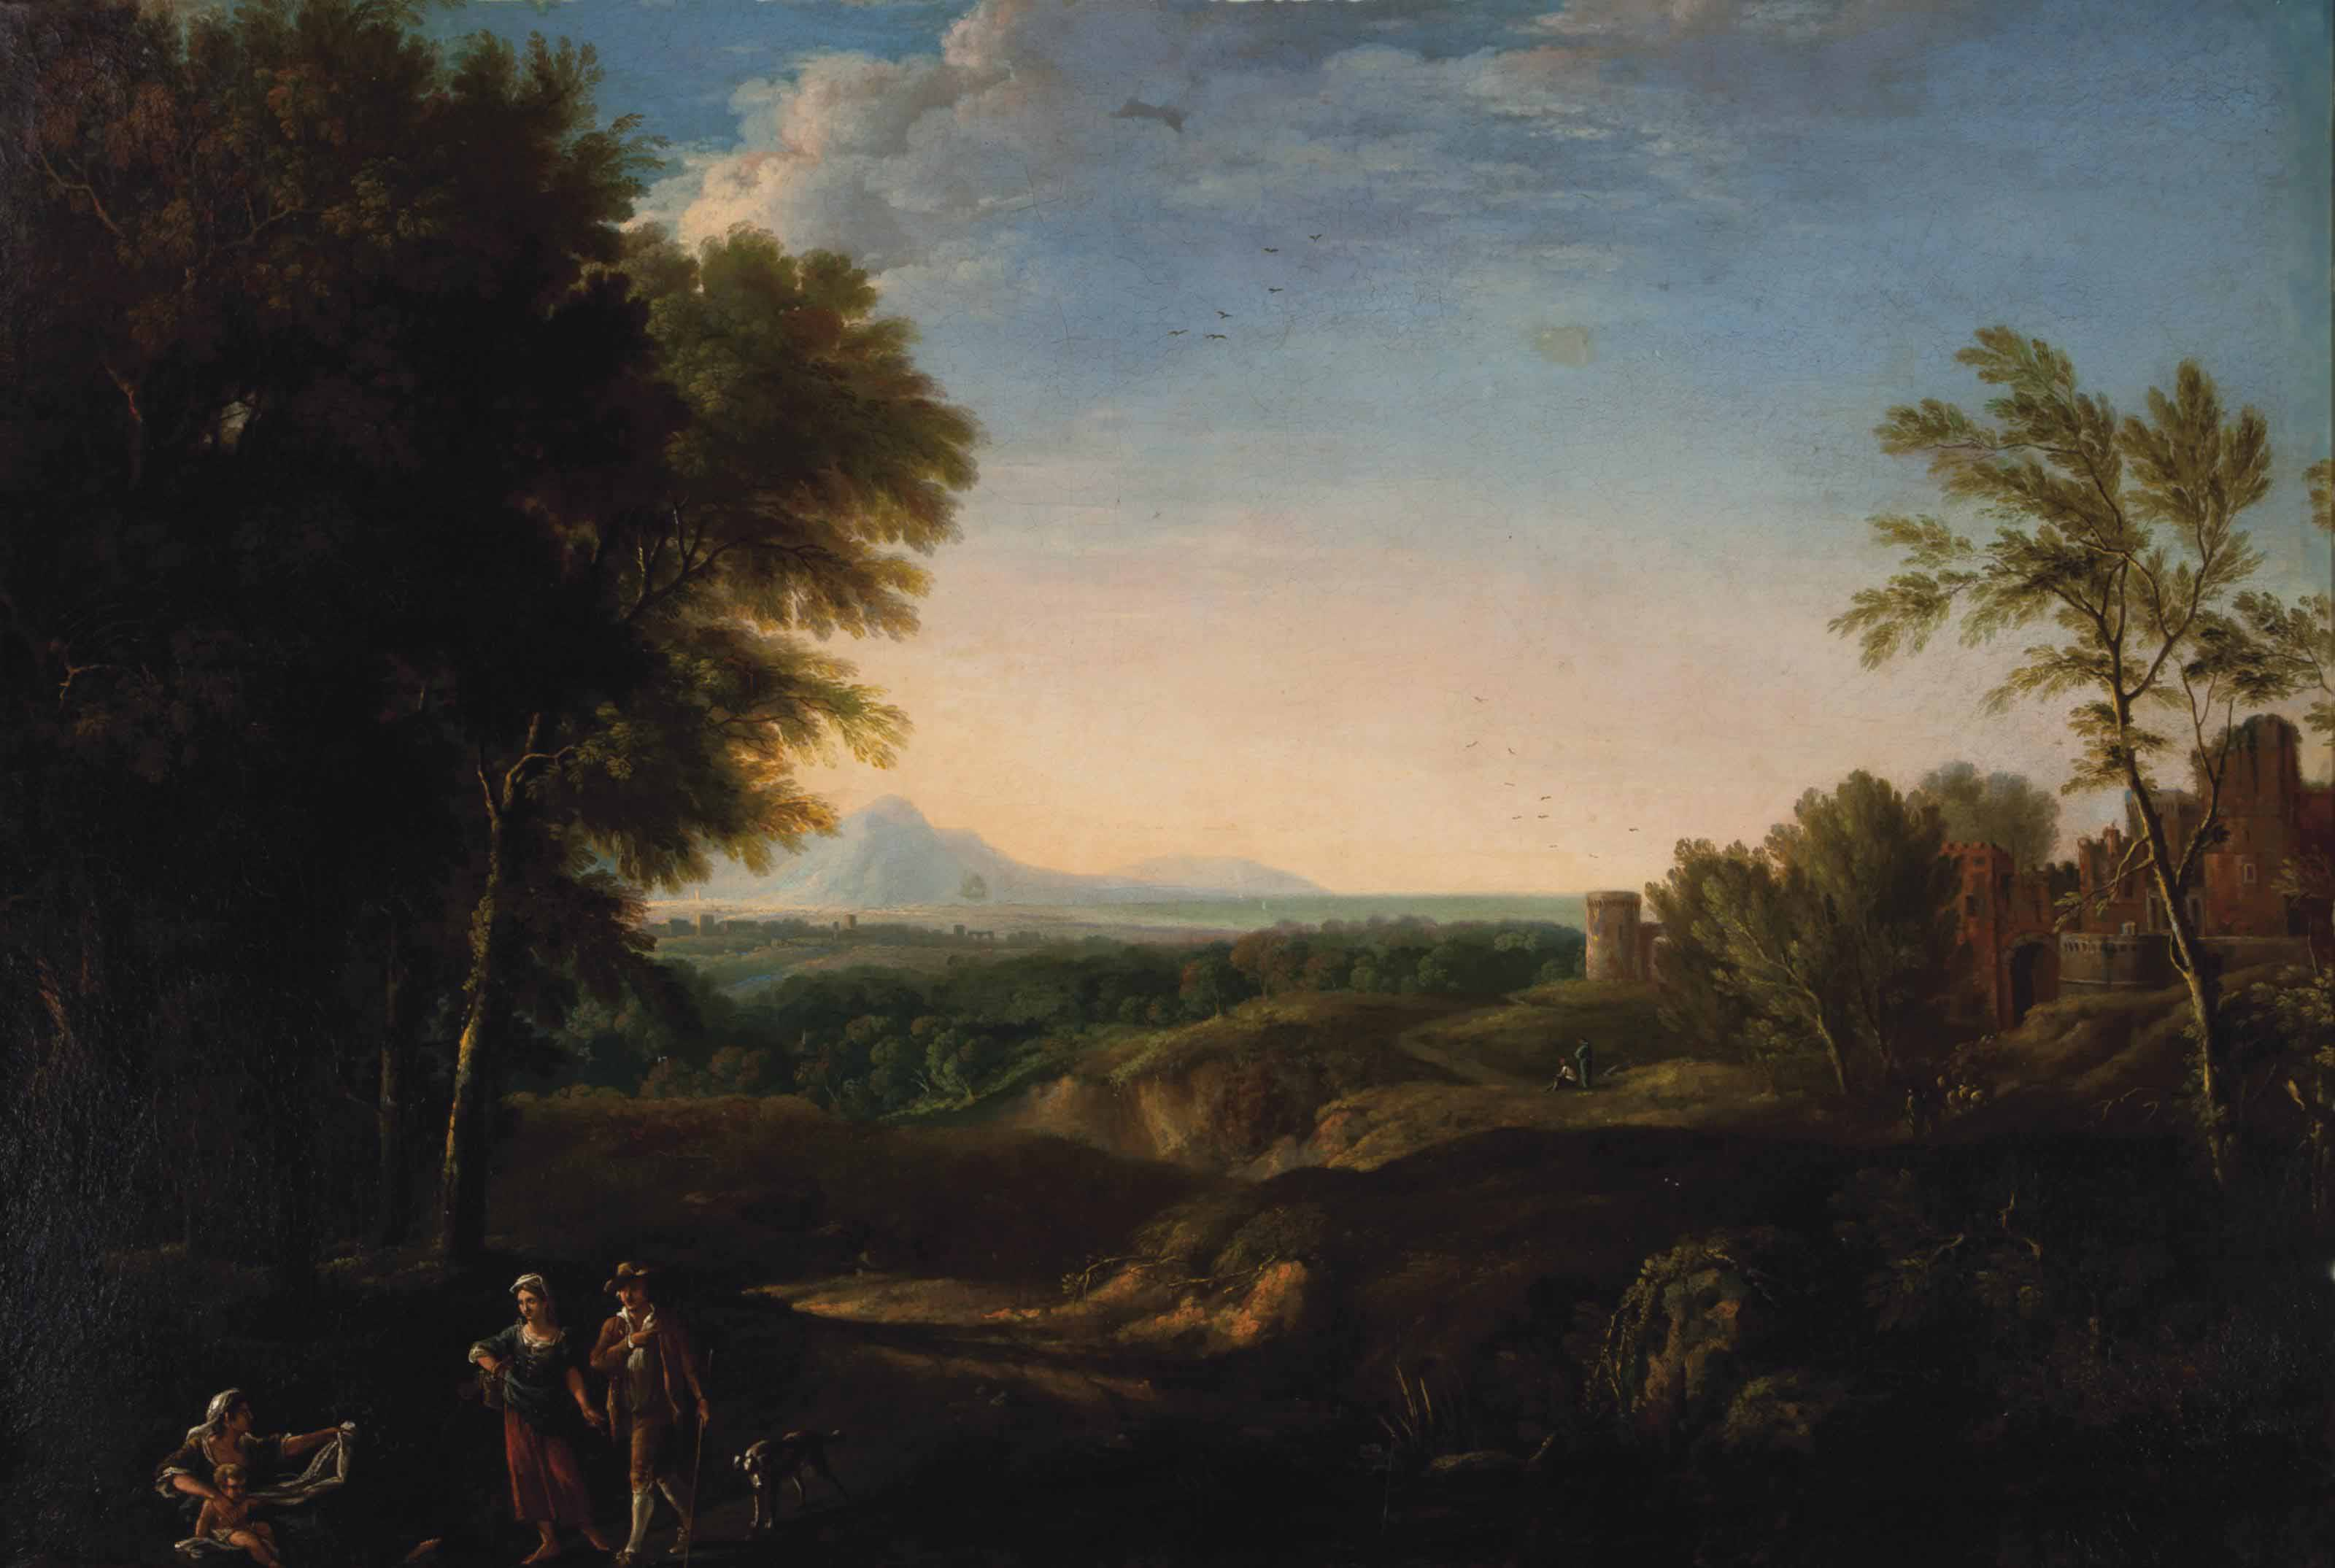 Pastoral landscape with travellers alongside a path